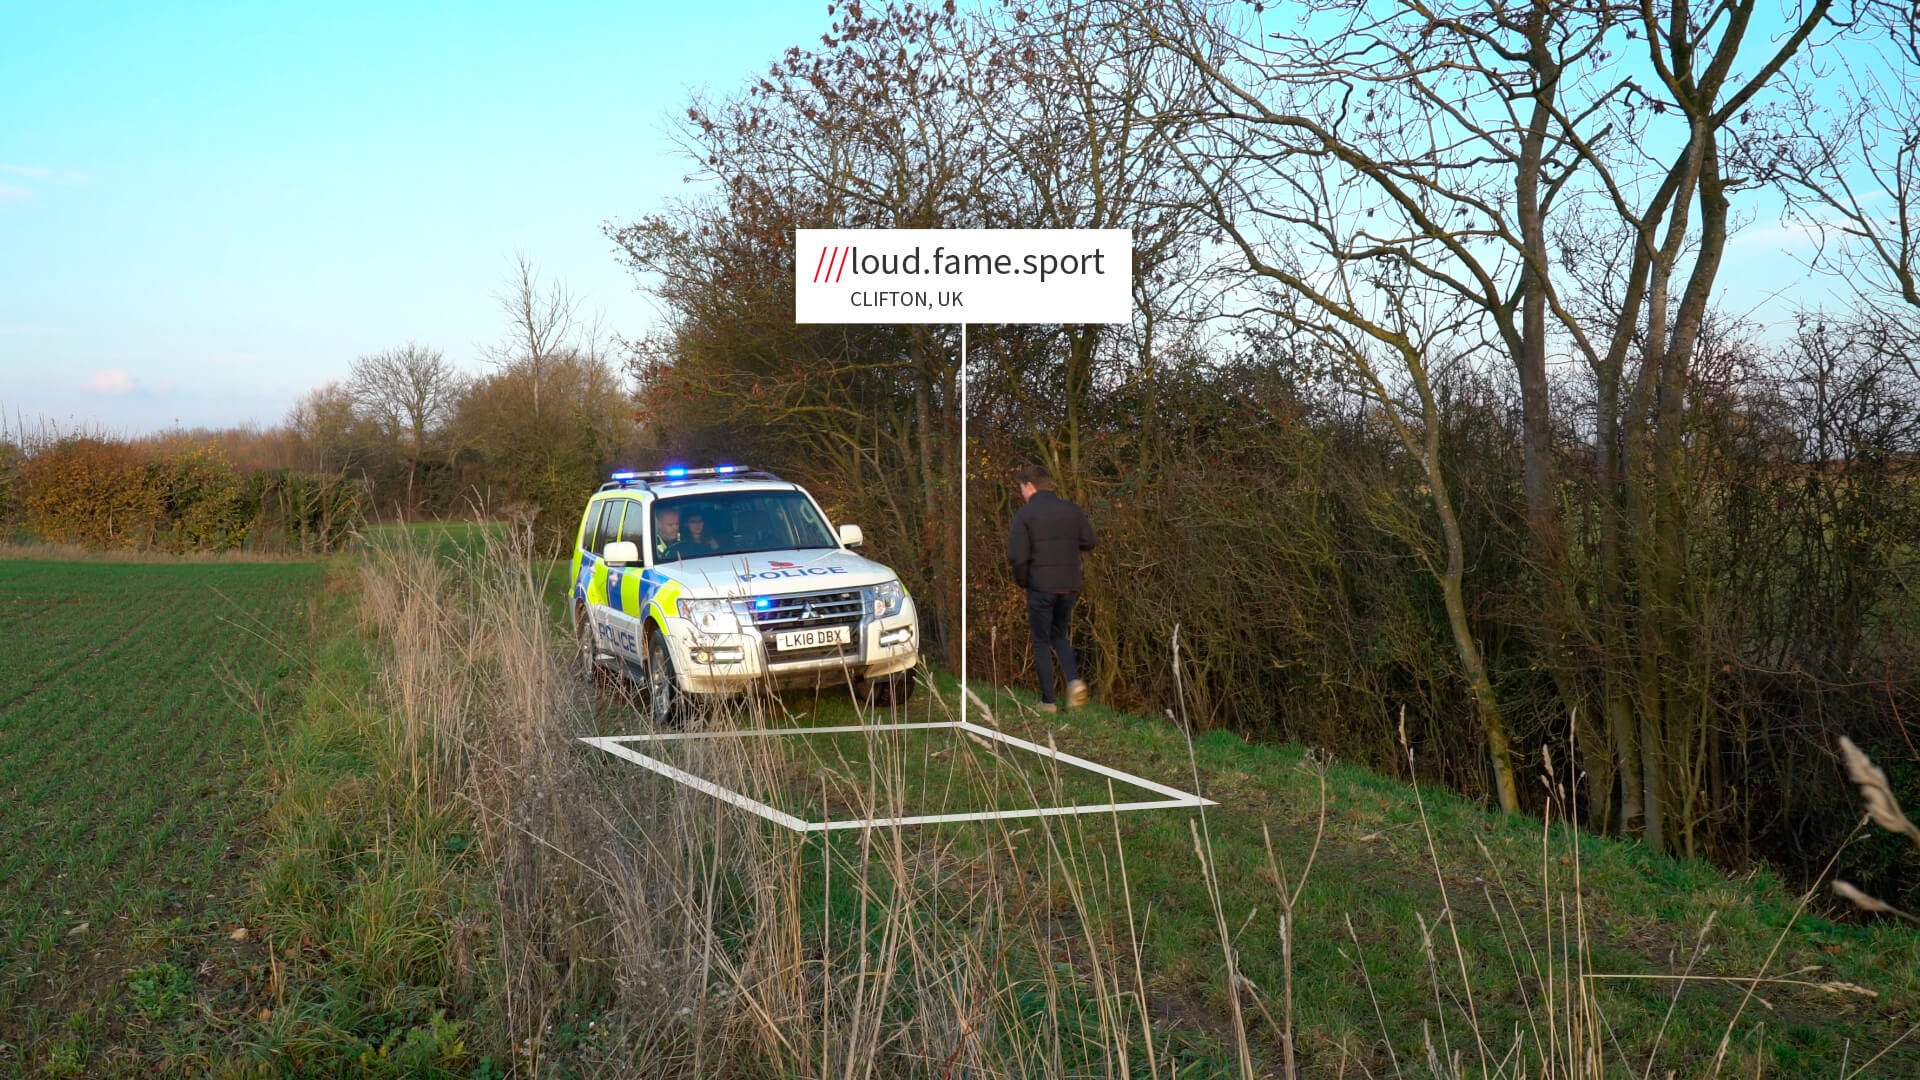 Police in countryside with what3words address